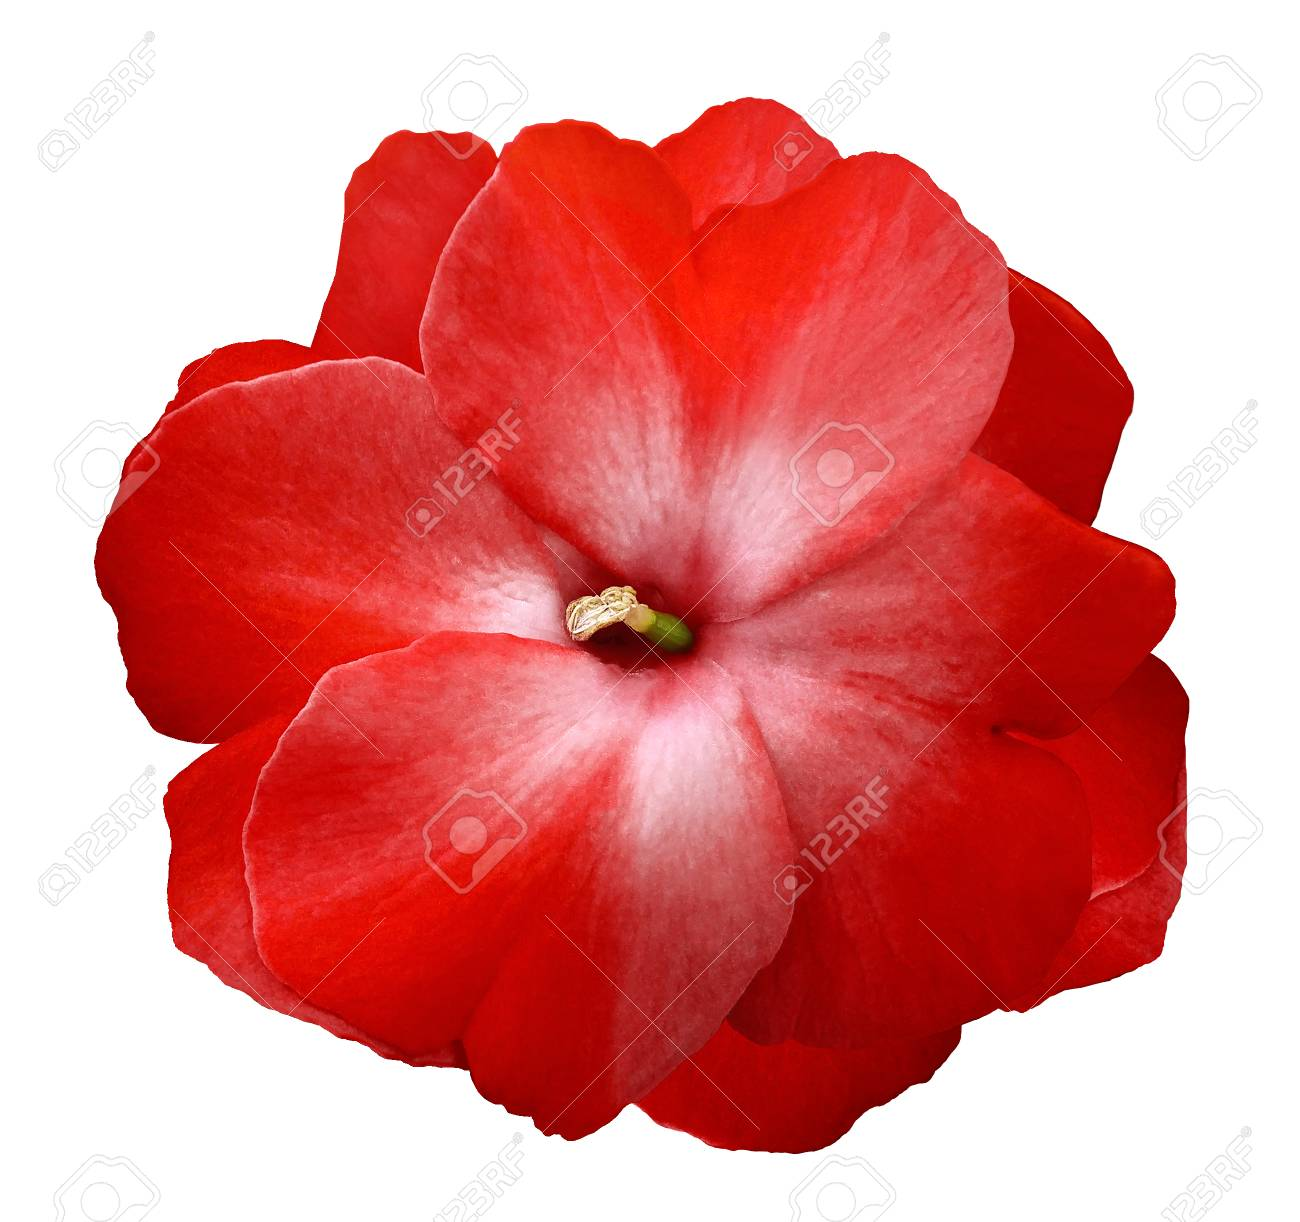 Flower Red Violets On A White Isolated Background . Stock Photo, Picture And Royalty Free Image. Image 104606867.